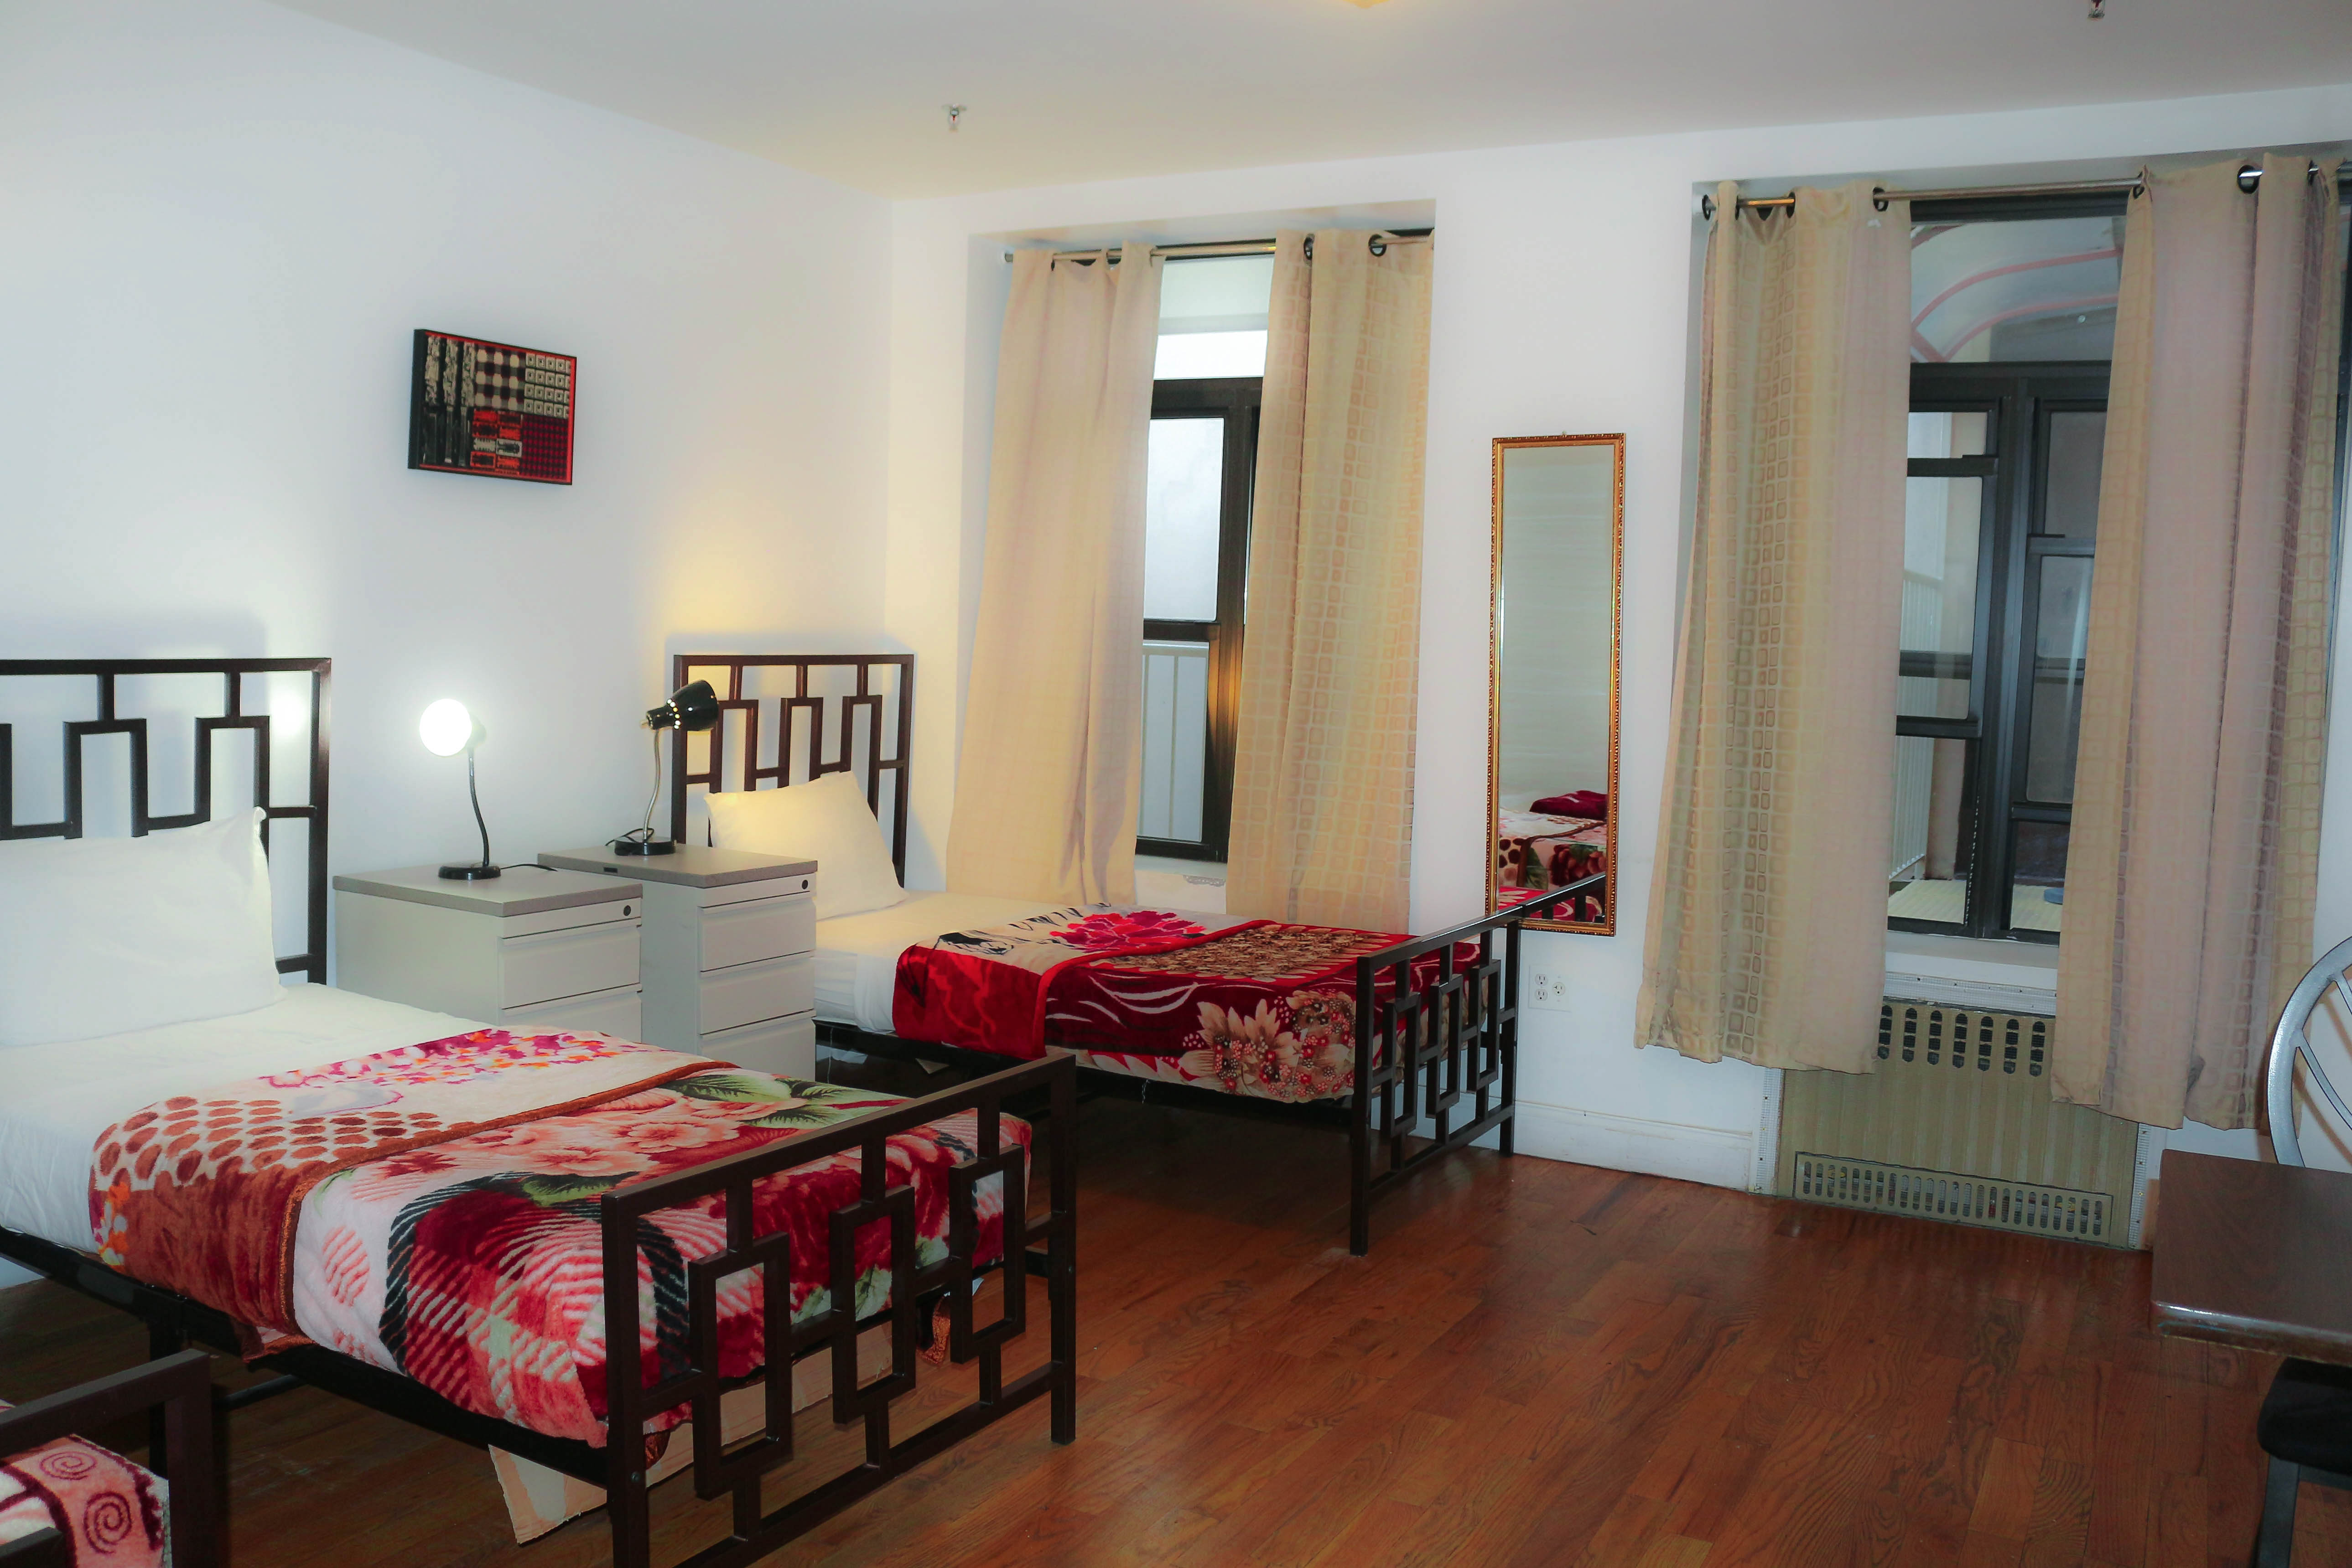 NY HOSTEL NY MOORE HOSTEL BROOKLYN HOSTEL HOSTEL IN NYC NEW YORK HOSTEL HO